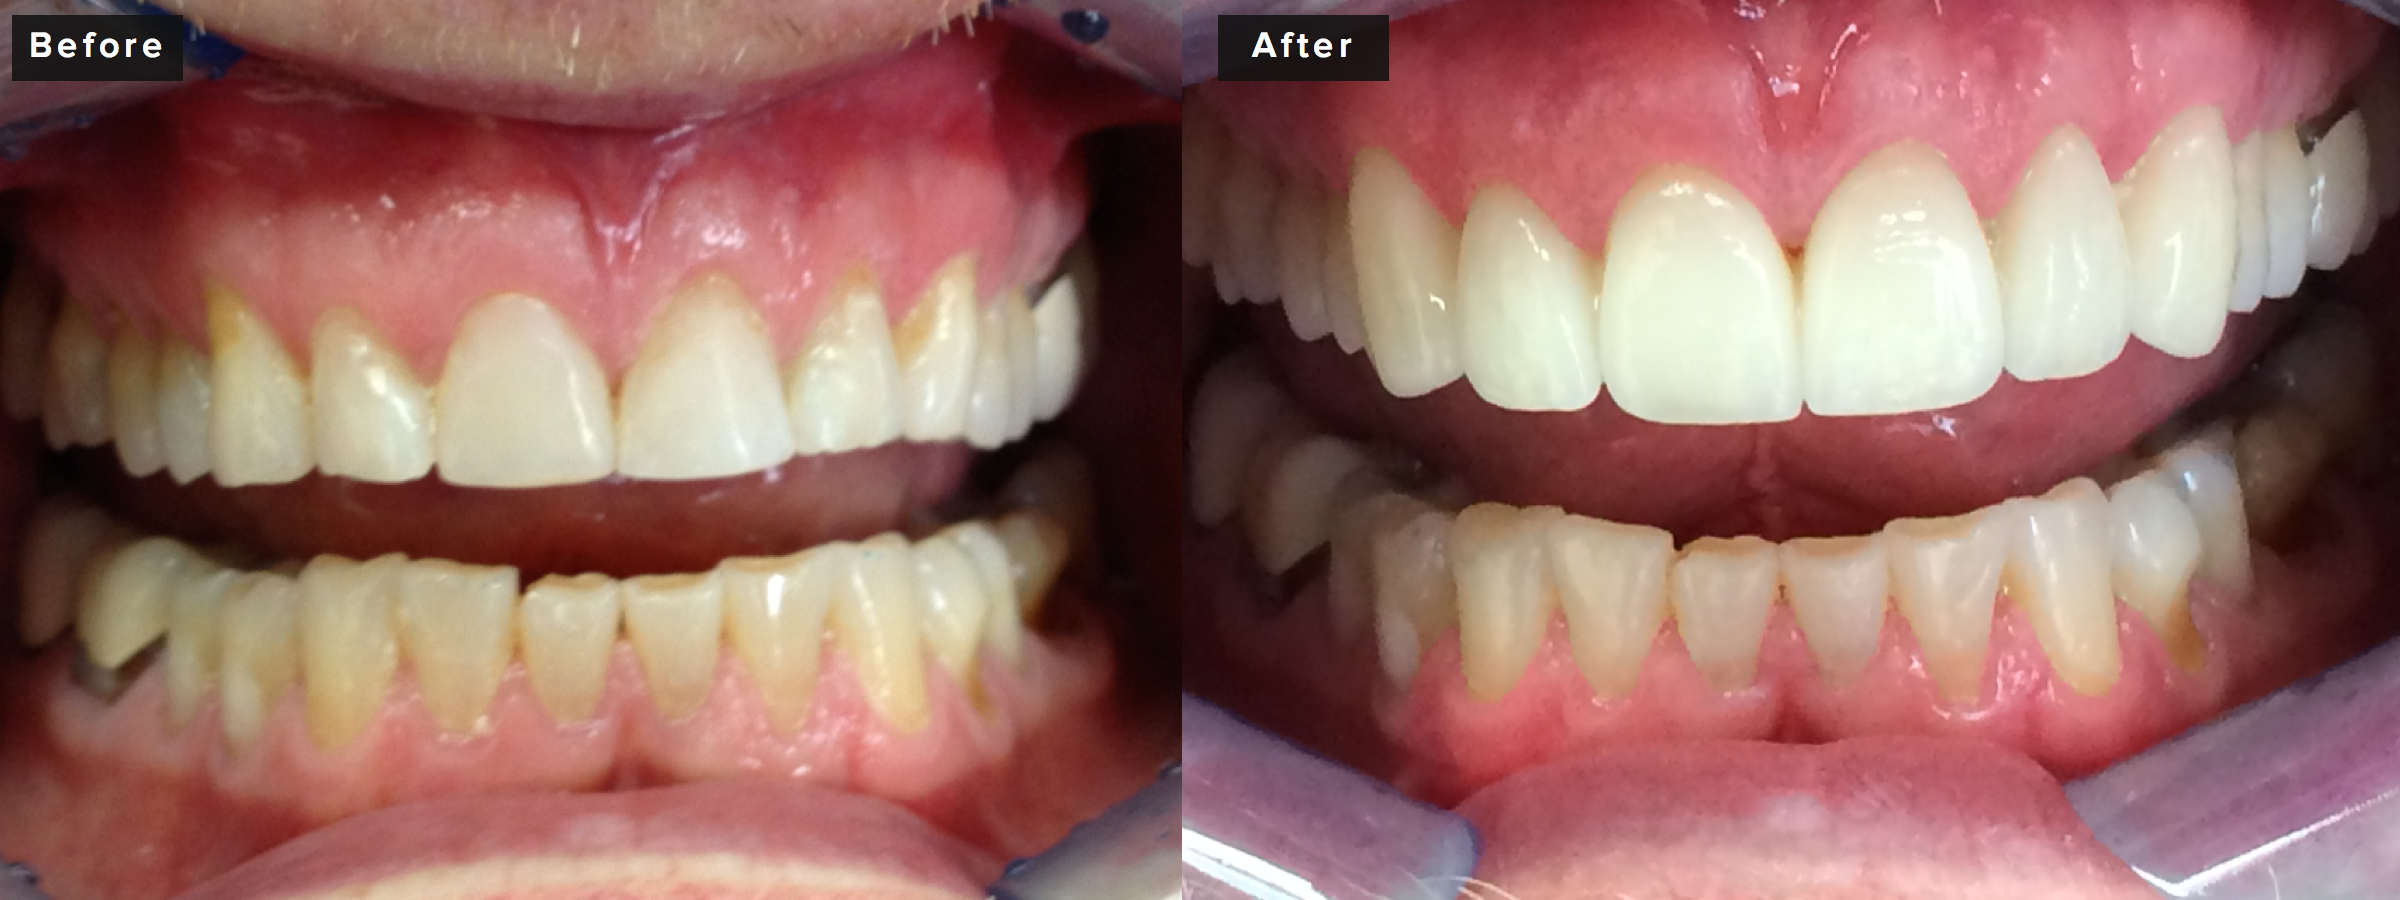 This case involved six front upper teeth, also done in all porcelain. The patient concerns were moderate to severe wear due to grinding and we were able to create an improved smile while also providing properly protected occlusion with specific detailed rebuilding of his bite. We achieved better aesthetics by rebuilding the teeth but also by recontouring his tissues slightly to increase the vertical dimension and provide improved symmetry. About two hours of prep time and an hour and a half for insertion.